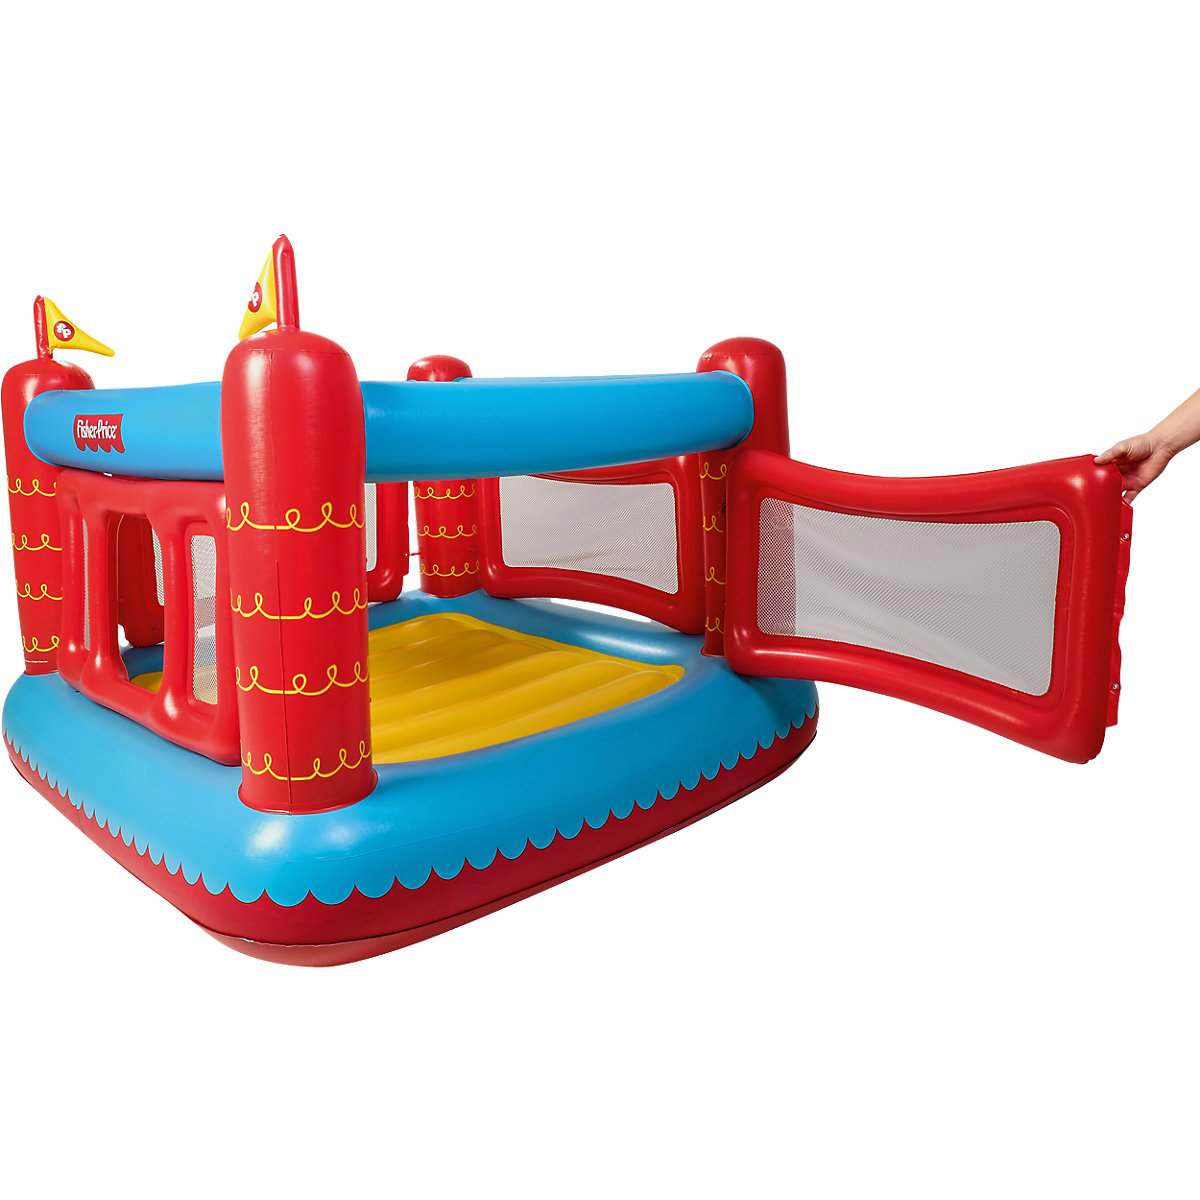 Bouncers,Jumpers & Swings BESTWAY 4639774 games toy trampoline for children Kids game trampolines fashion halloween haunted house funny spoof toy simulation centipede for party fun resin games children kids gadgets